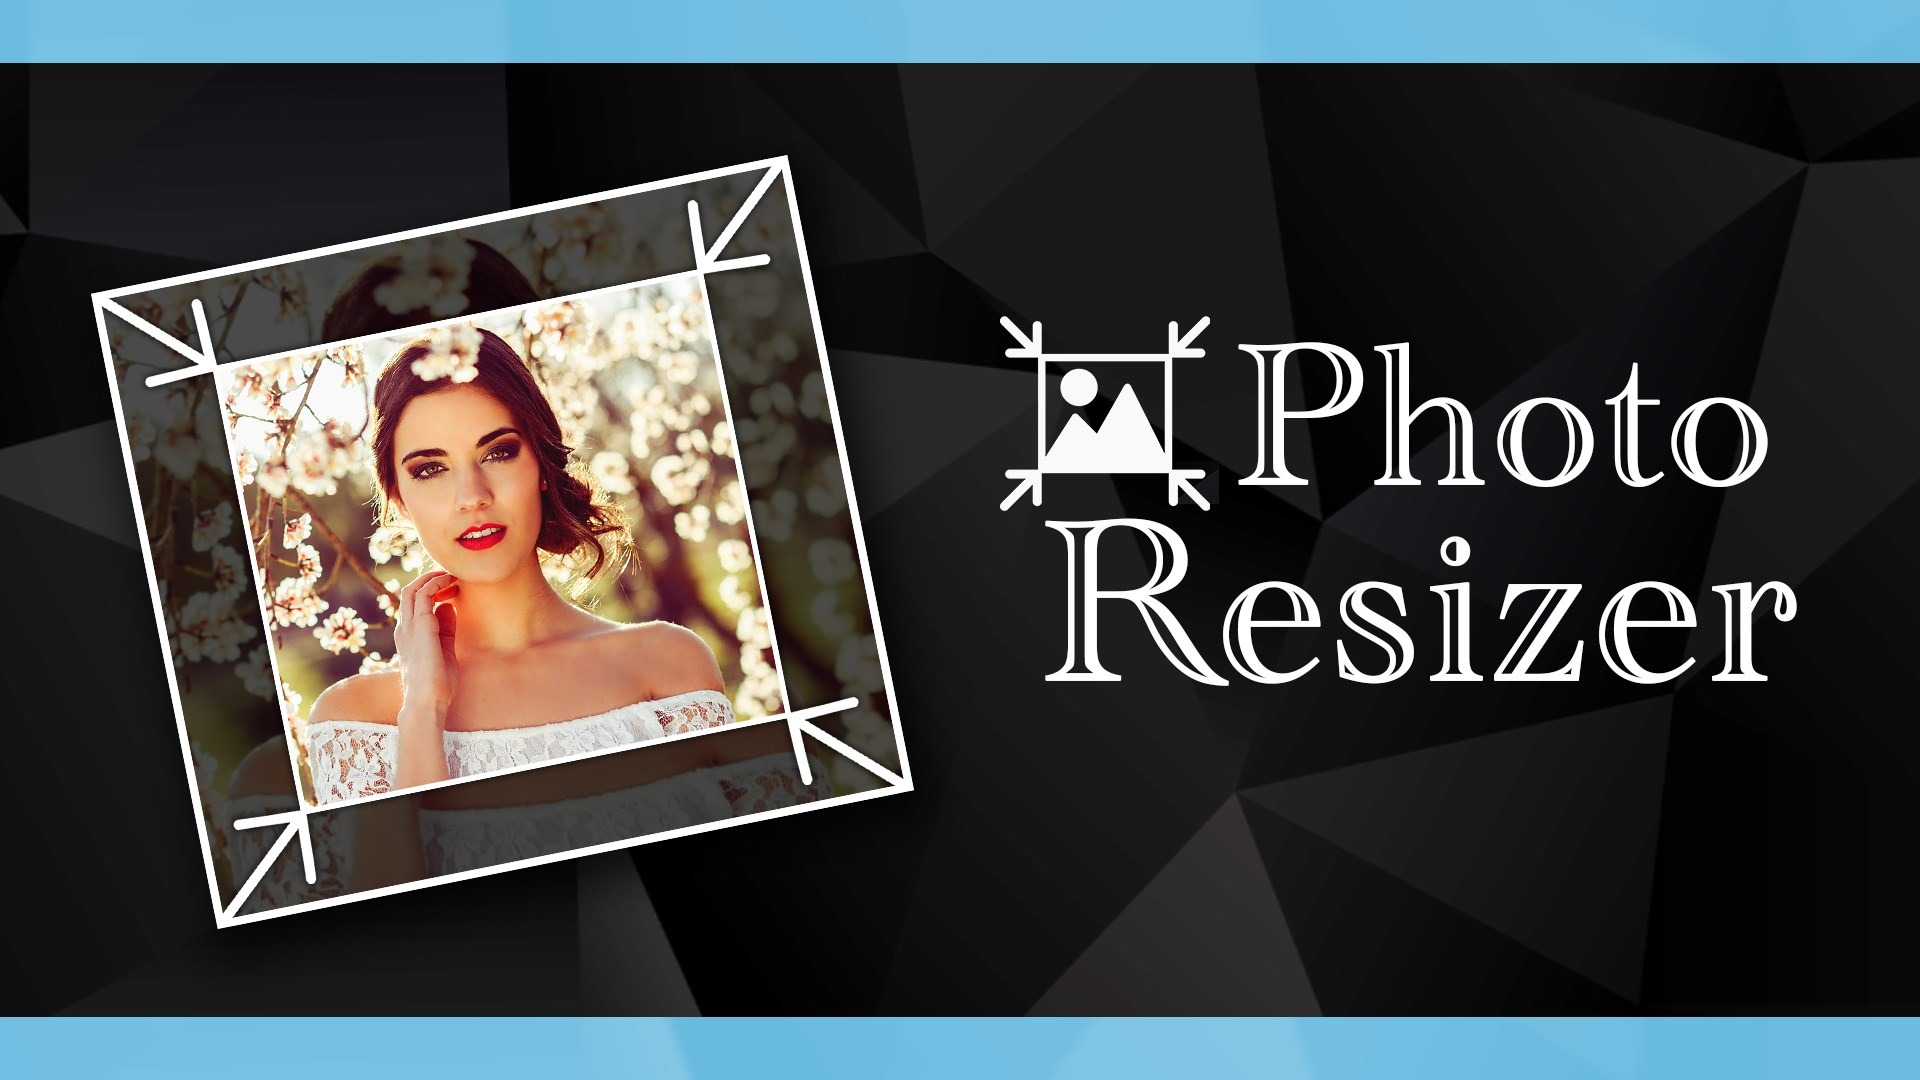 Get PHOTO RESIZER: CROP, RESIZE AND SHARE IMAGES